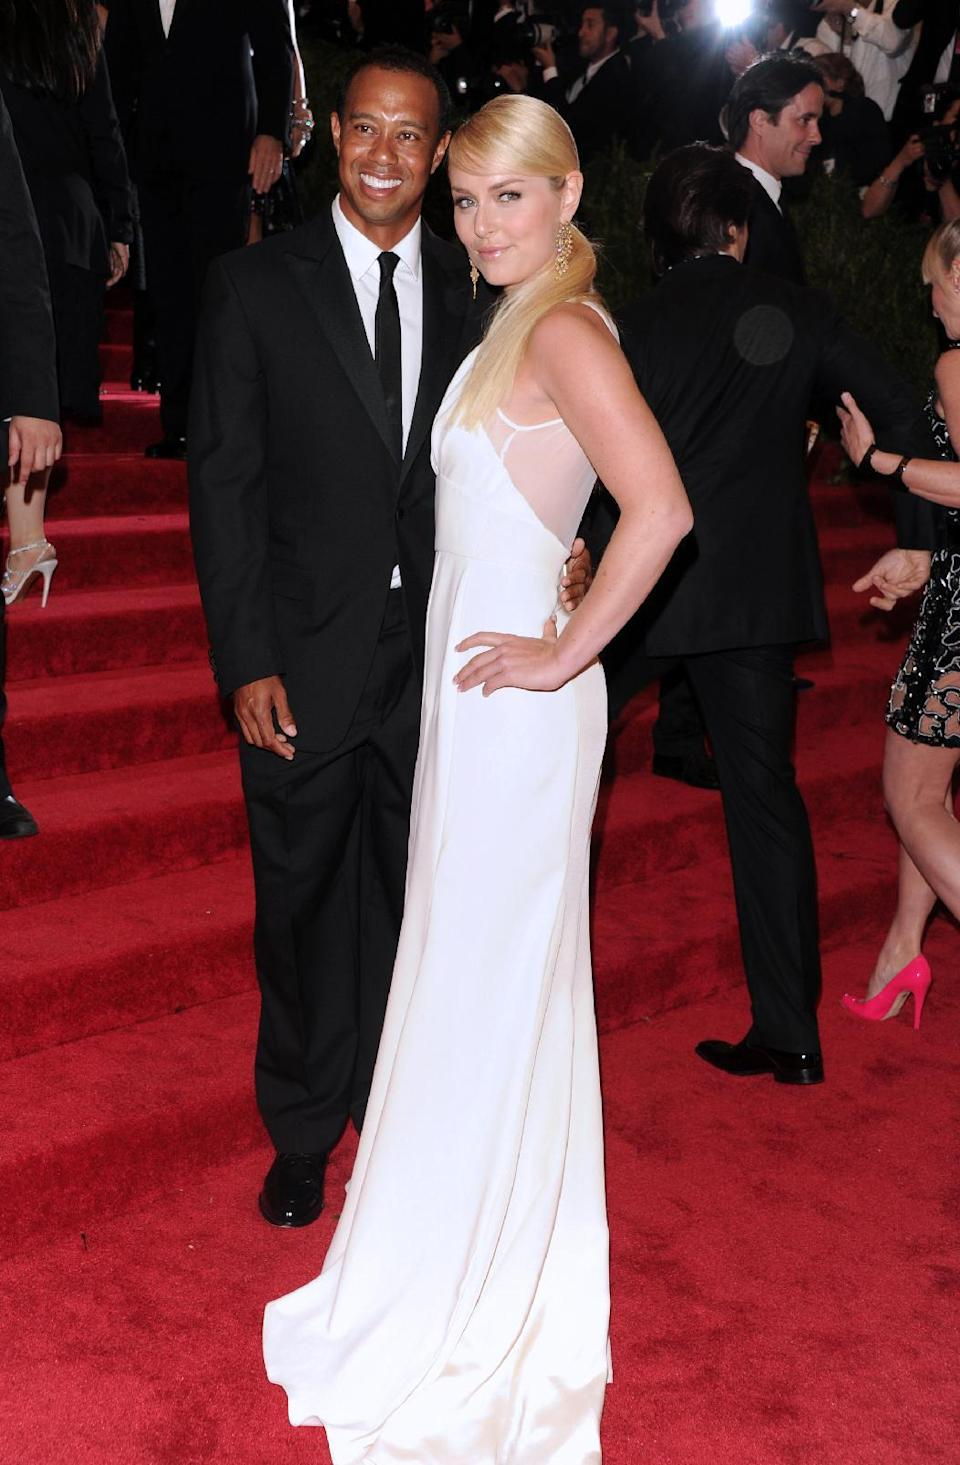 """Golfer Tiger Woods and skier Lindsey Vonn attend The Metropolitan Museum of Art's Costume Institute benefit celebrating """"PUNK: Chaos to Couture"""" on Monday May 6, 2013 in New York. (Photo by Evan Agostini/Invision/AP)"""